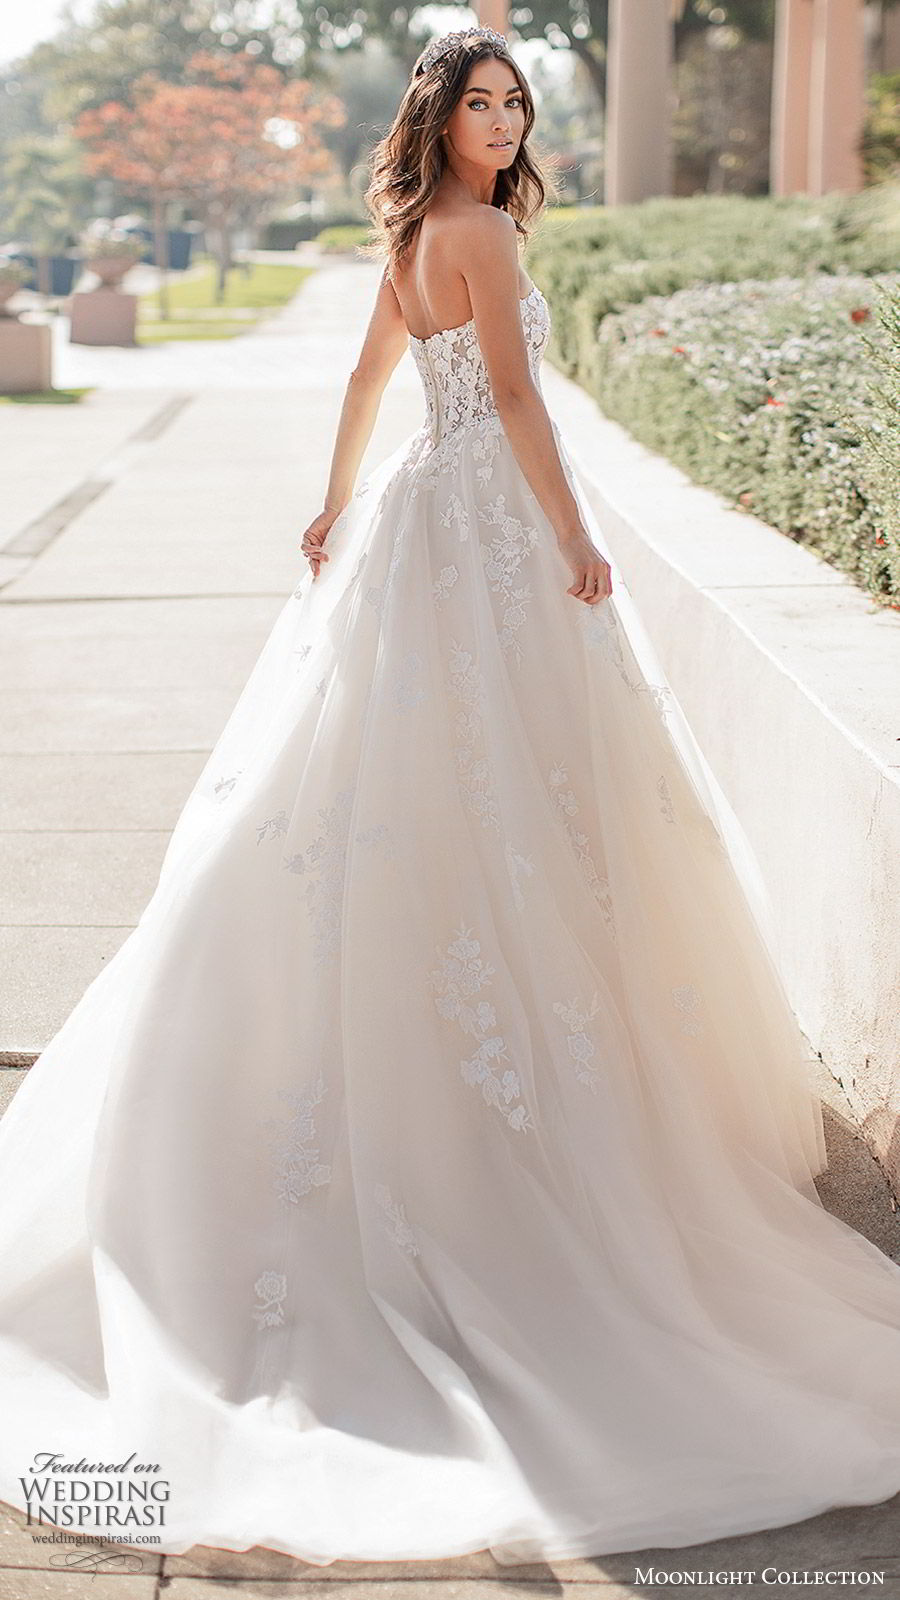 moonlight collection fall 2019 bridal strapless sweetheart embellished bodice lace ball gown a line wedding dress (6) romantic princess elegant chapel train bv